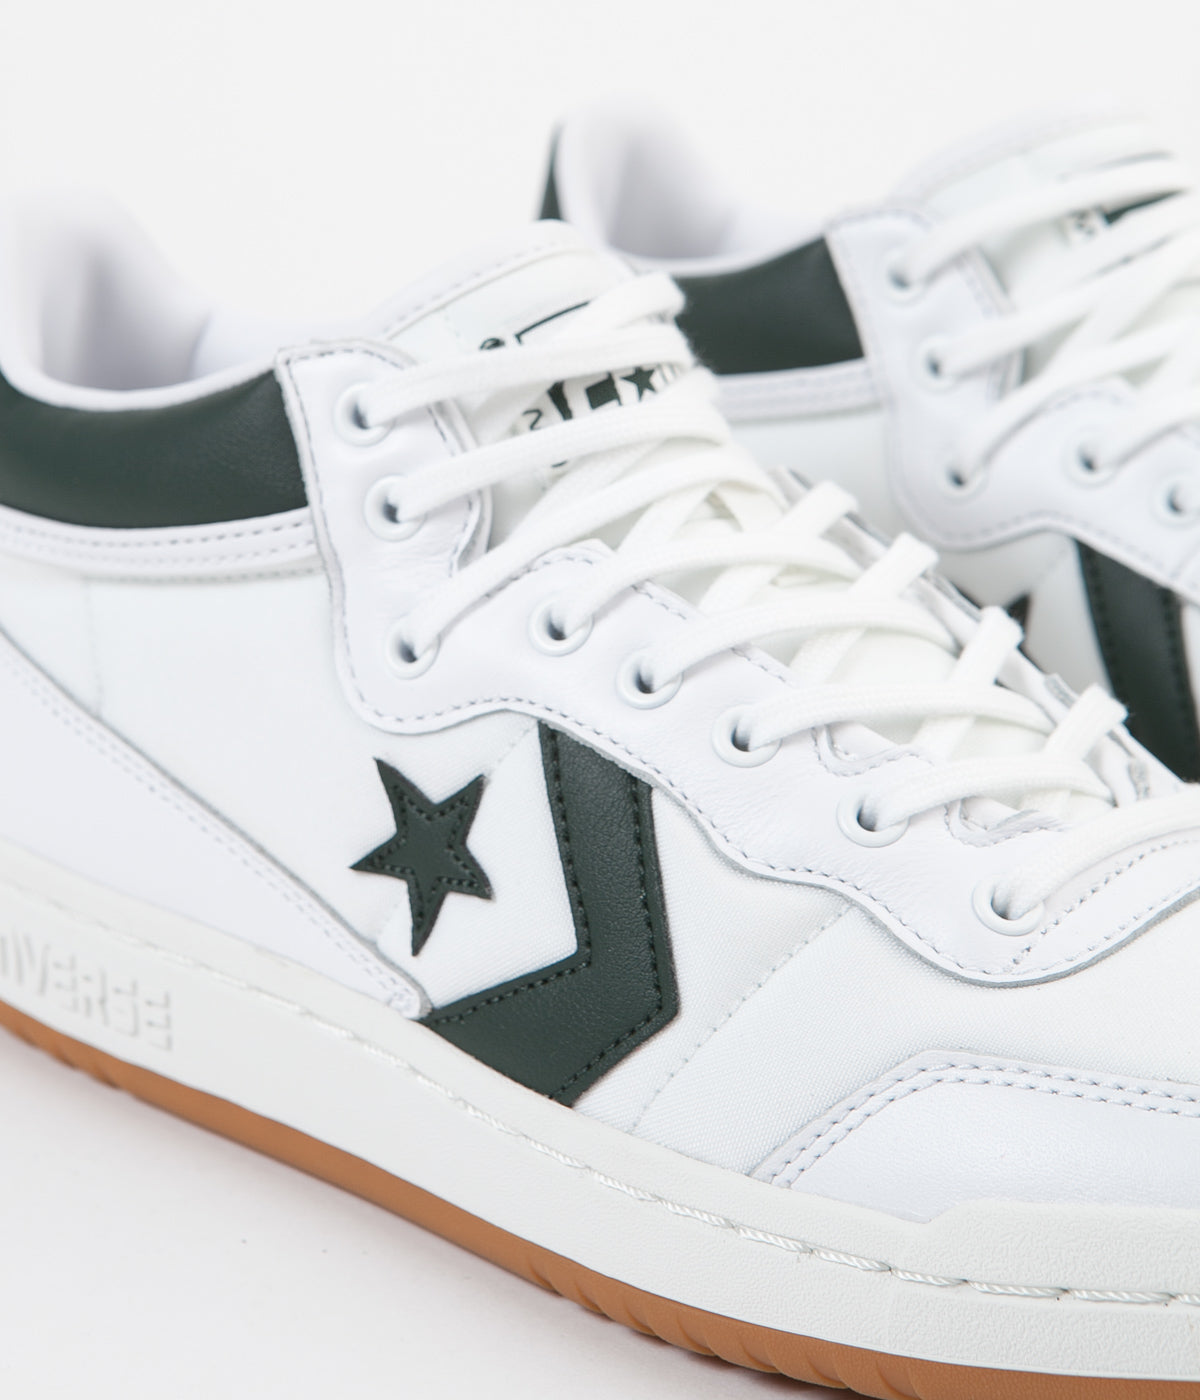 Converse Fastbreak Pro Mid Leather OG Block Shoes - White / Deep Emerald / Gum